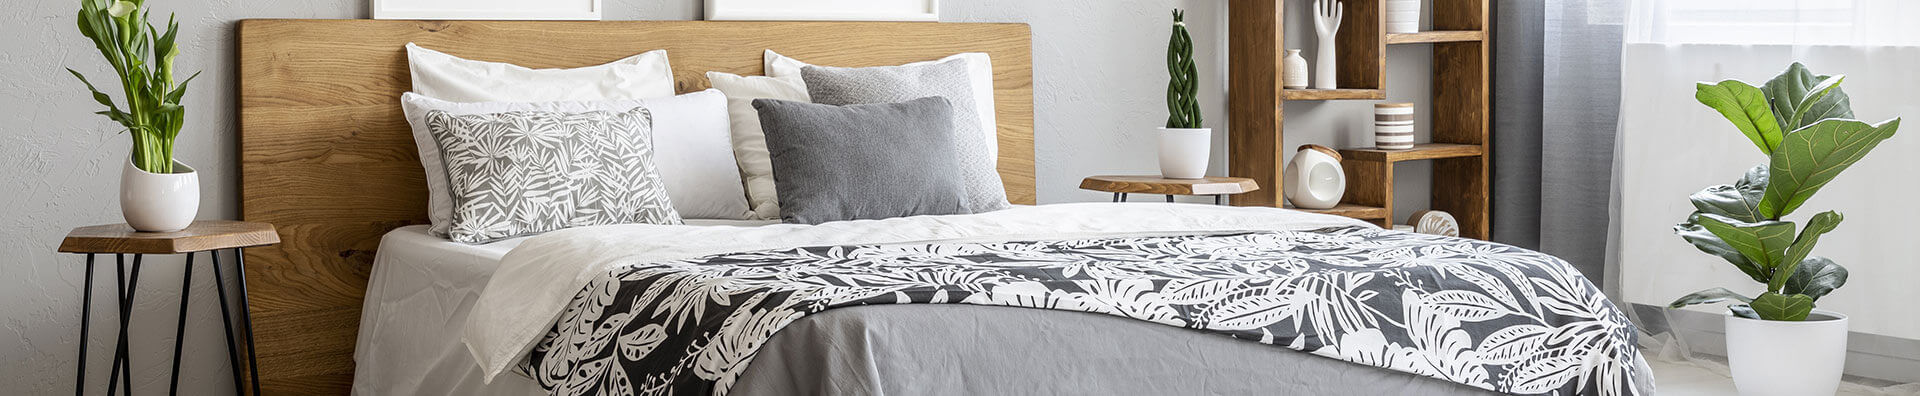 bridal bed linen melbourne